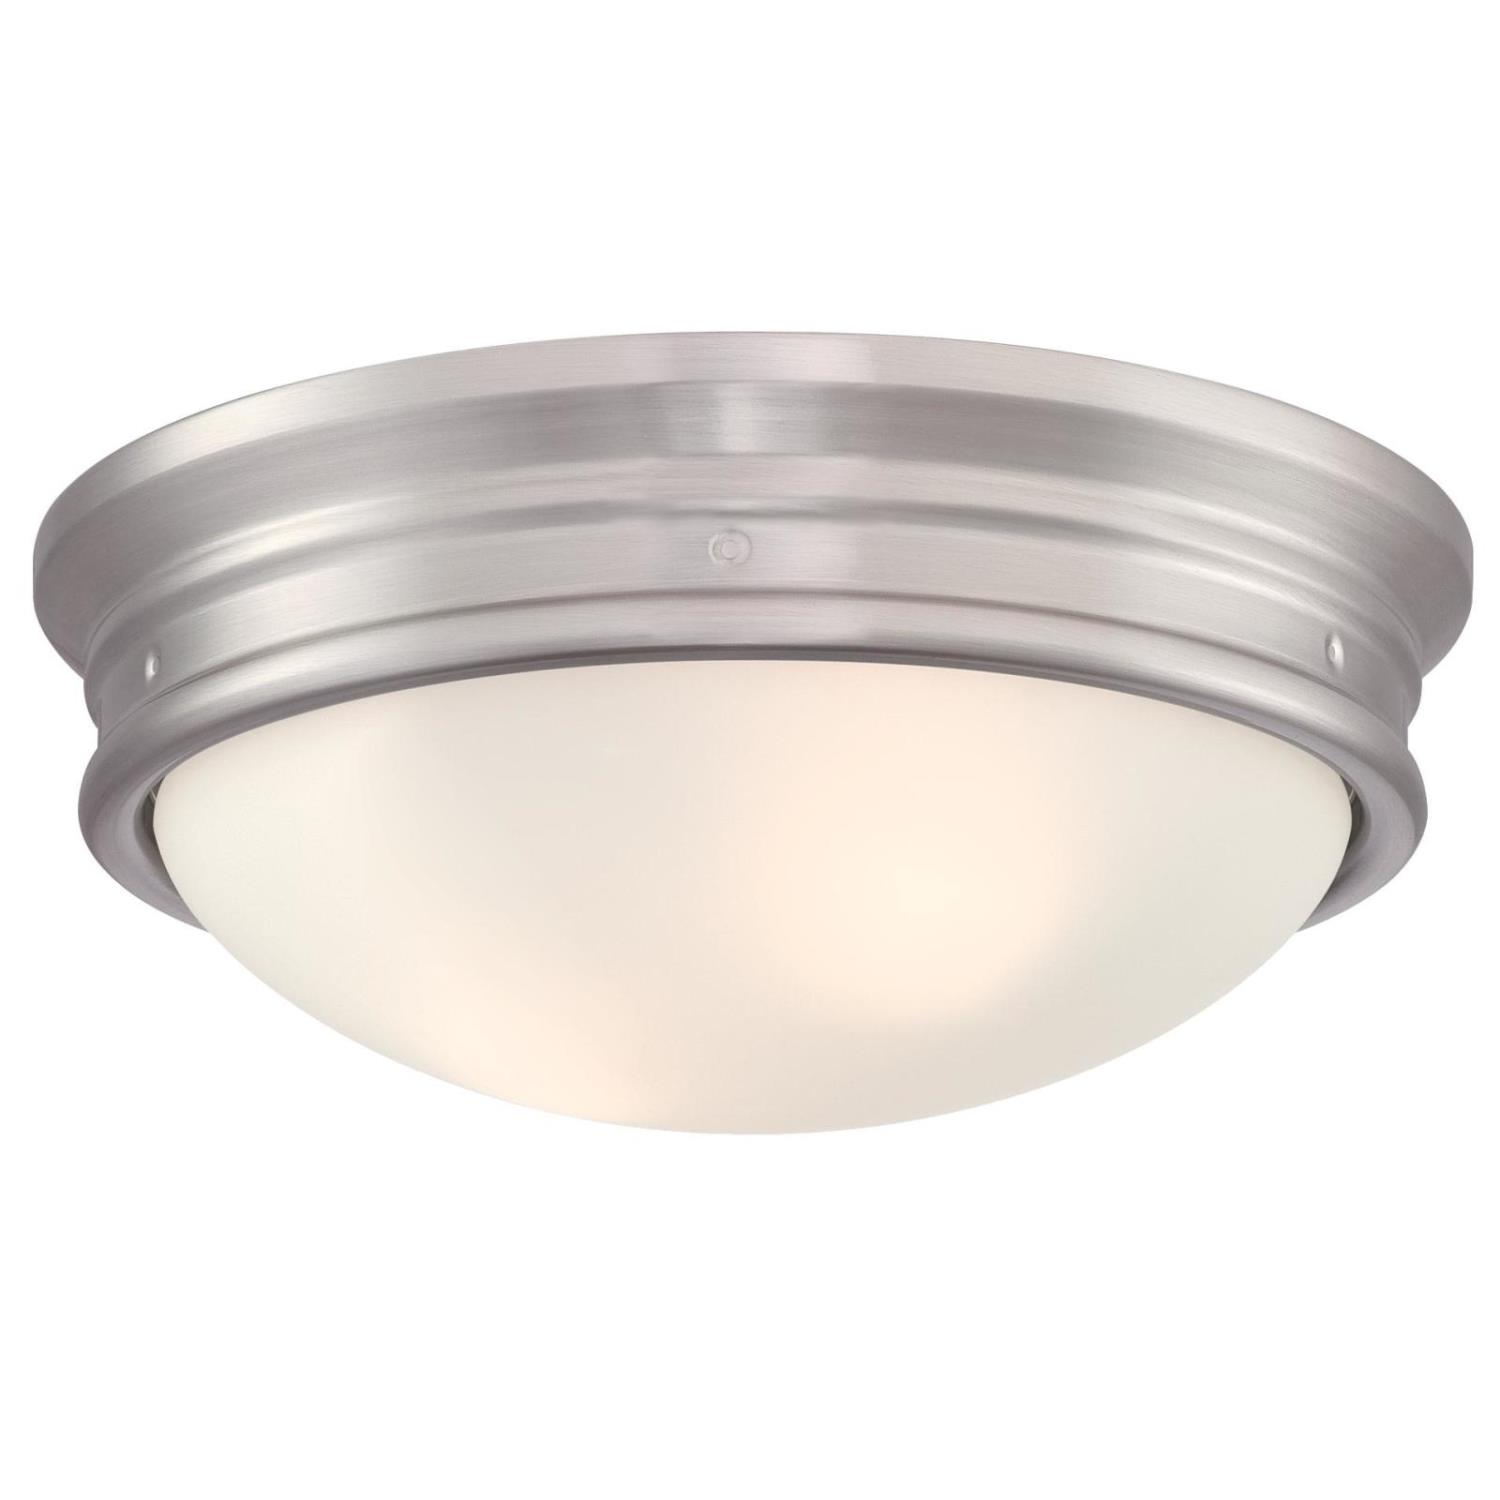 13 in. 2 Light Flush Brushed Nickel Finish with Frosted Glass